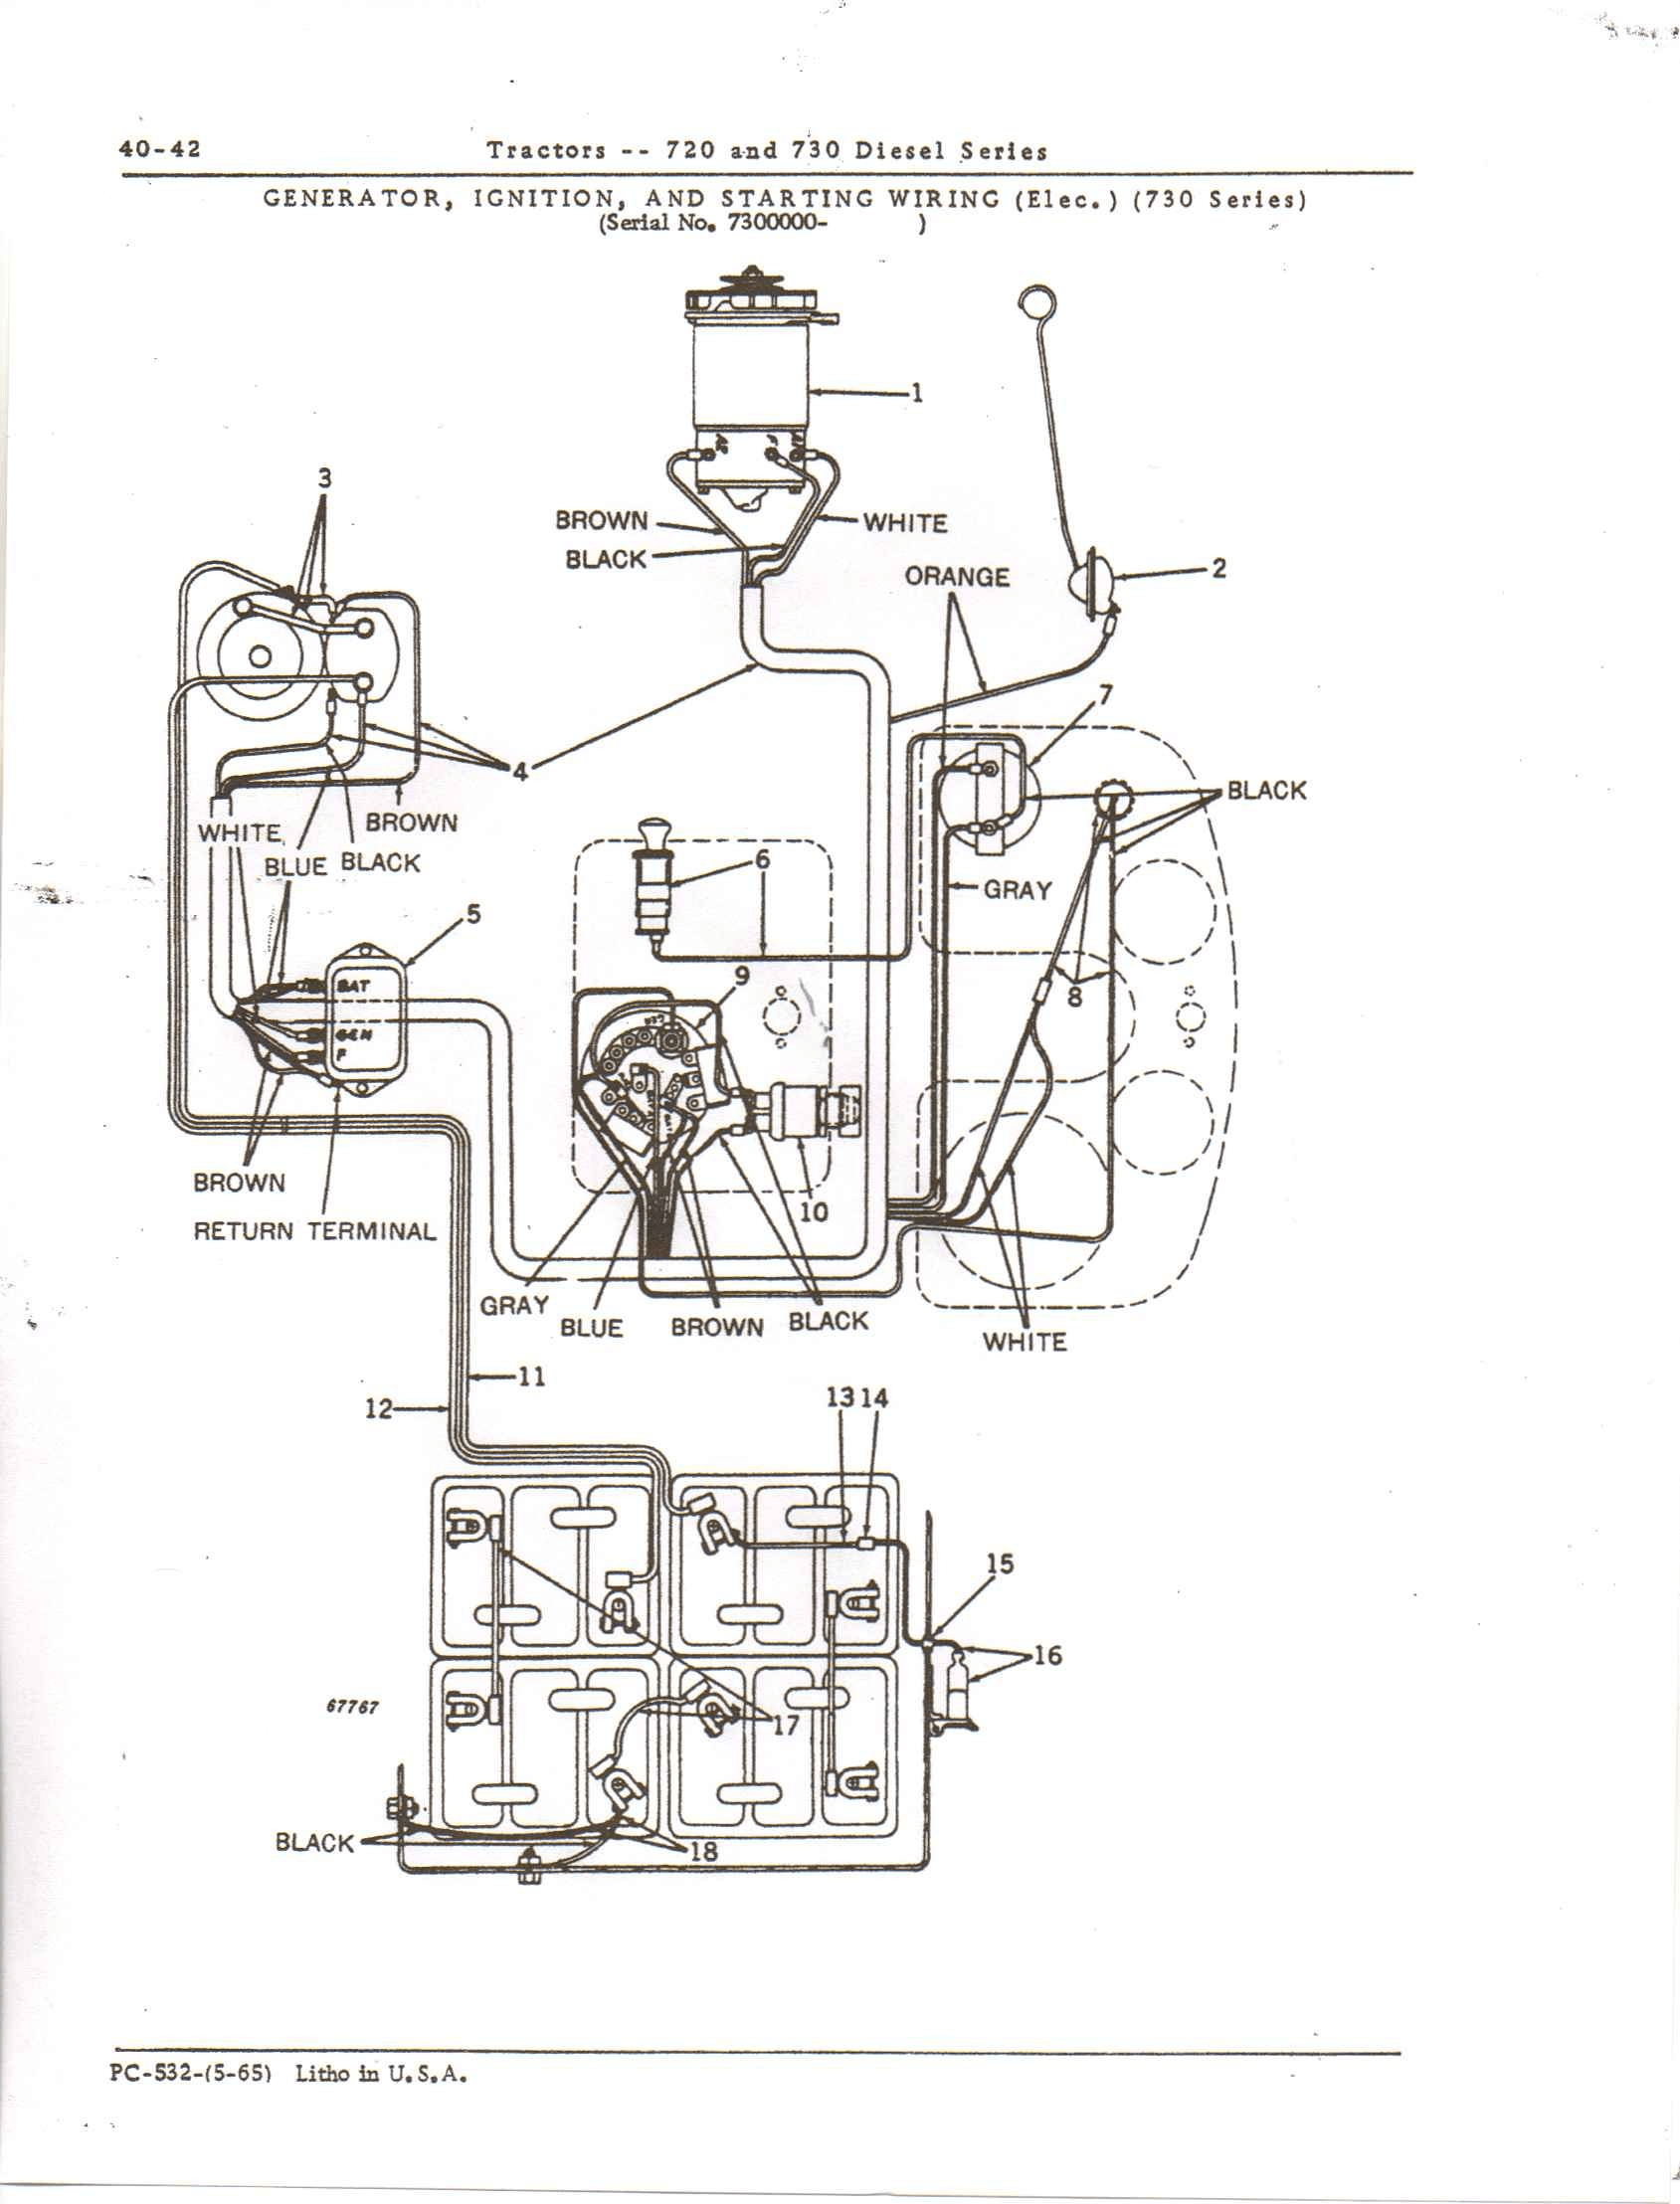 hight resolution of john deere 720 wiring diagram wiring diagram database john deere lawn mower wiring diagram